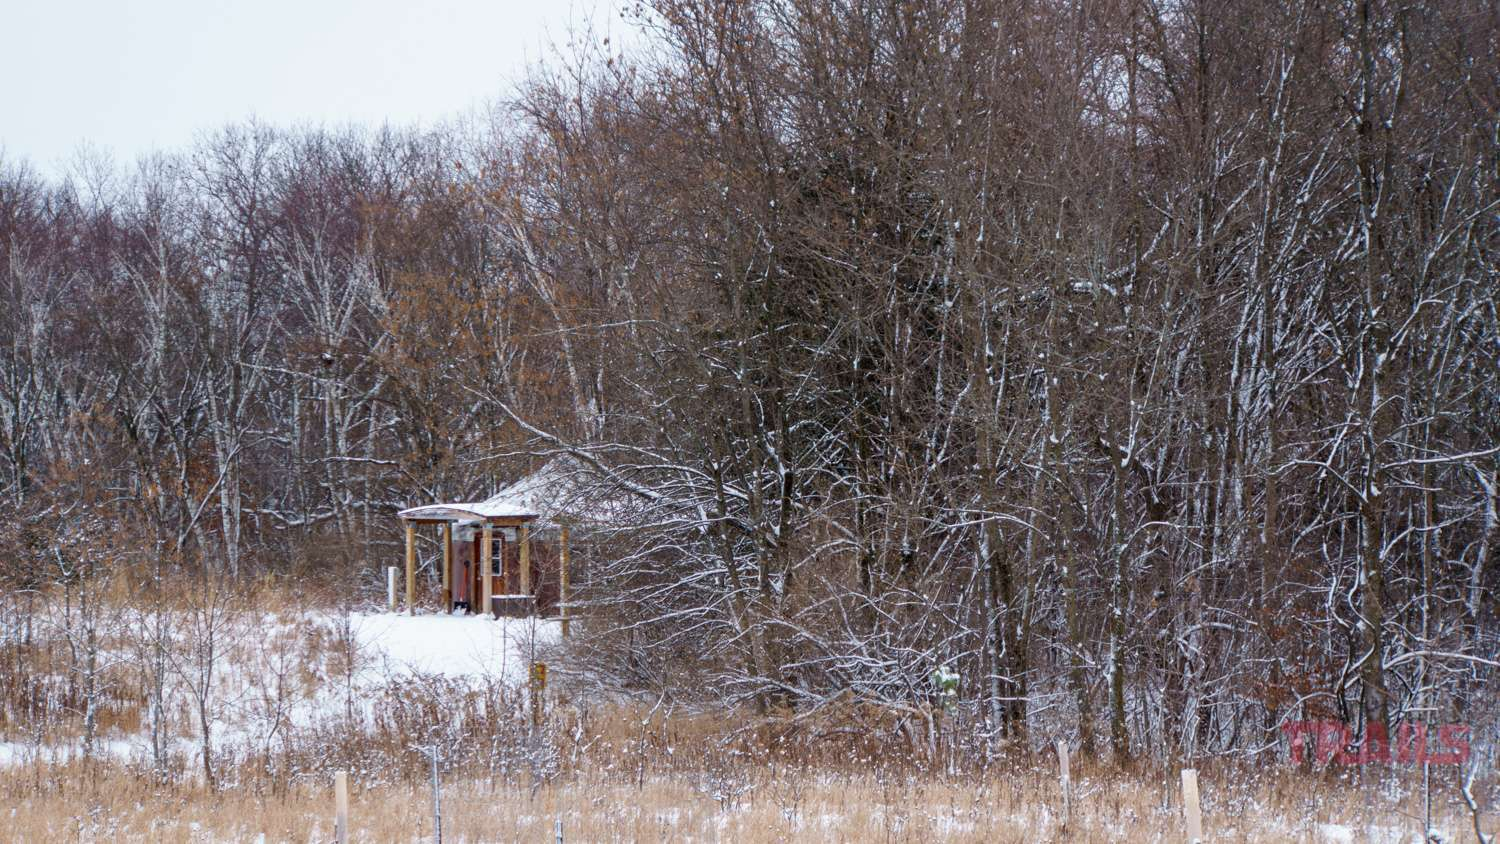 Yurt in the winter at Afton State Park